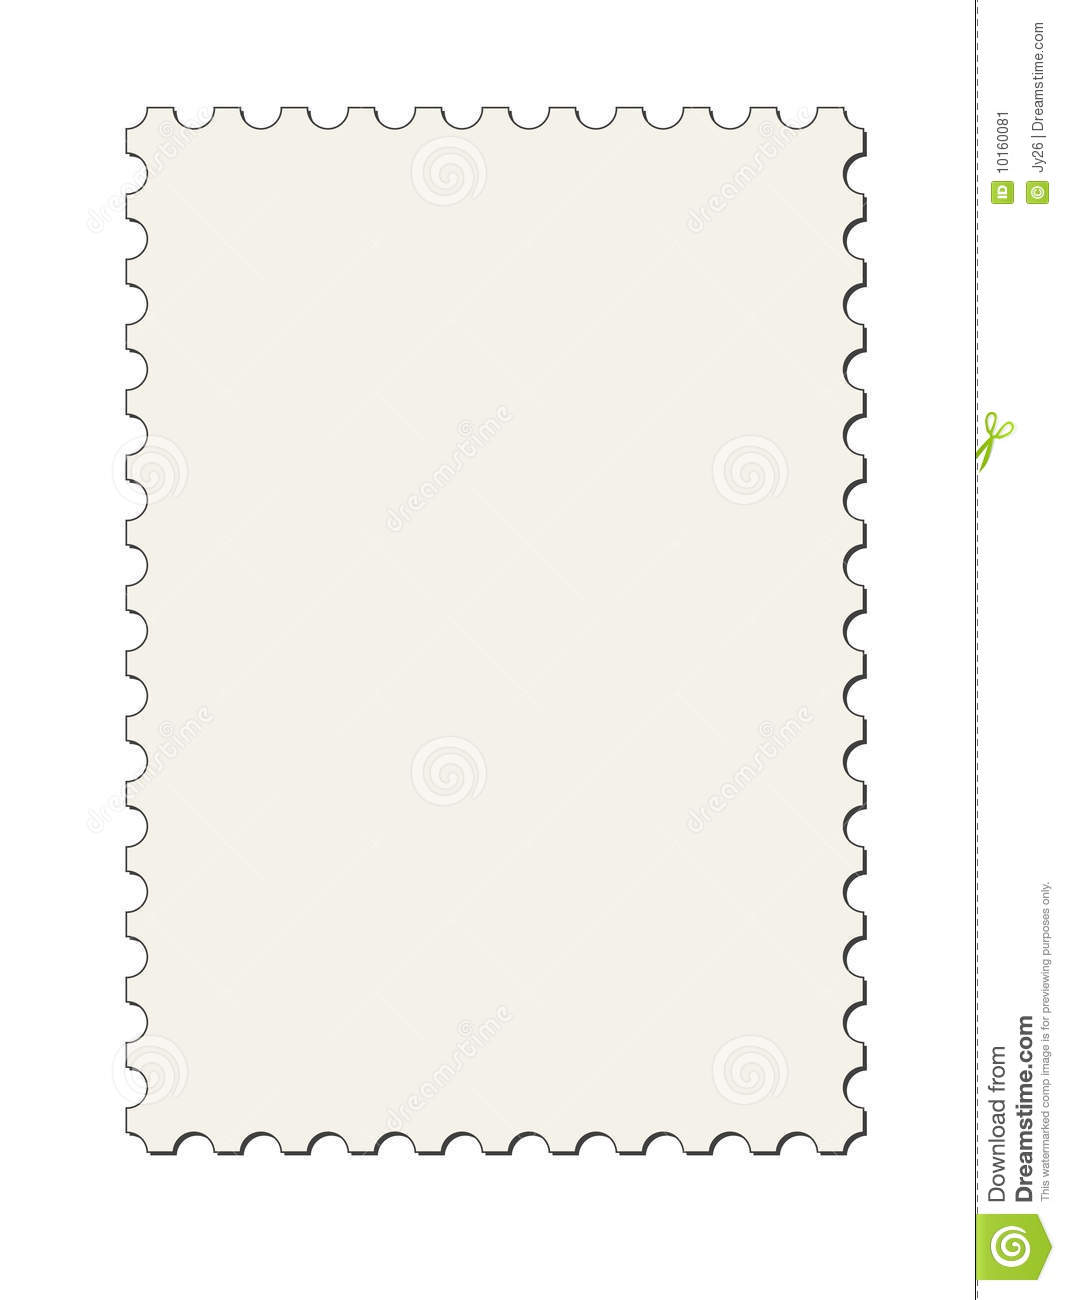 Postage Stamp Border Vector Stock Image